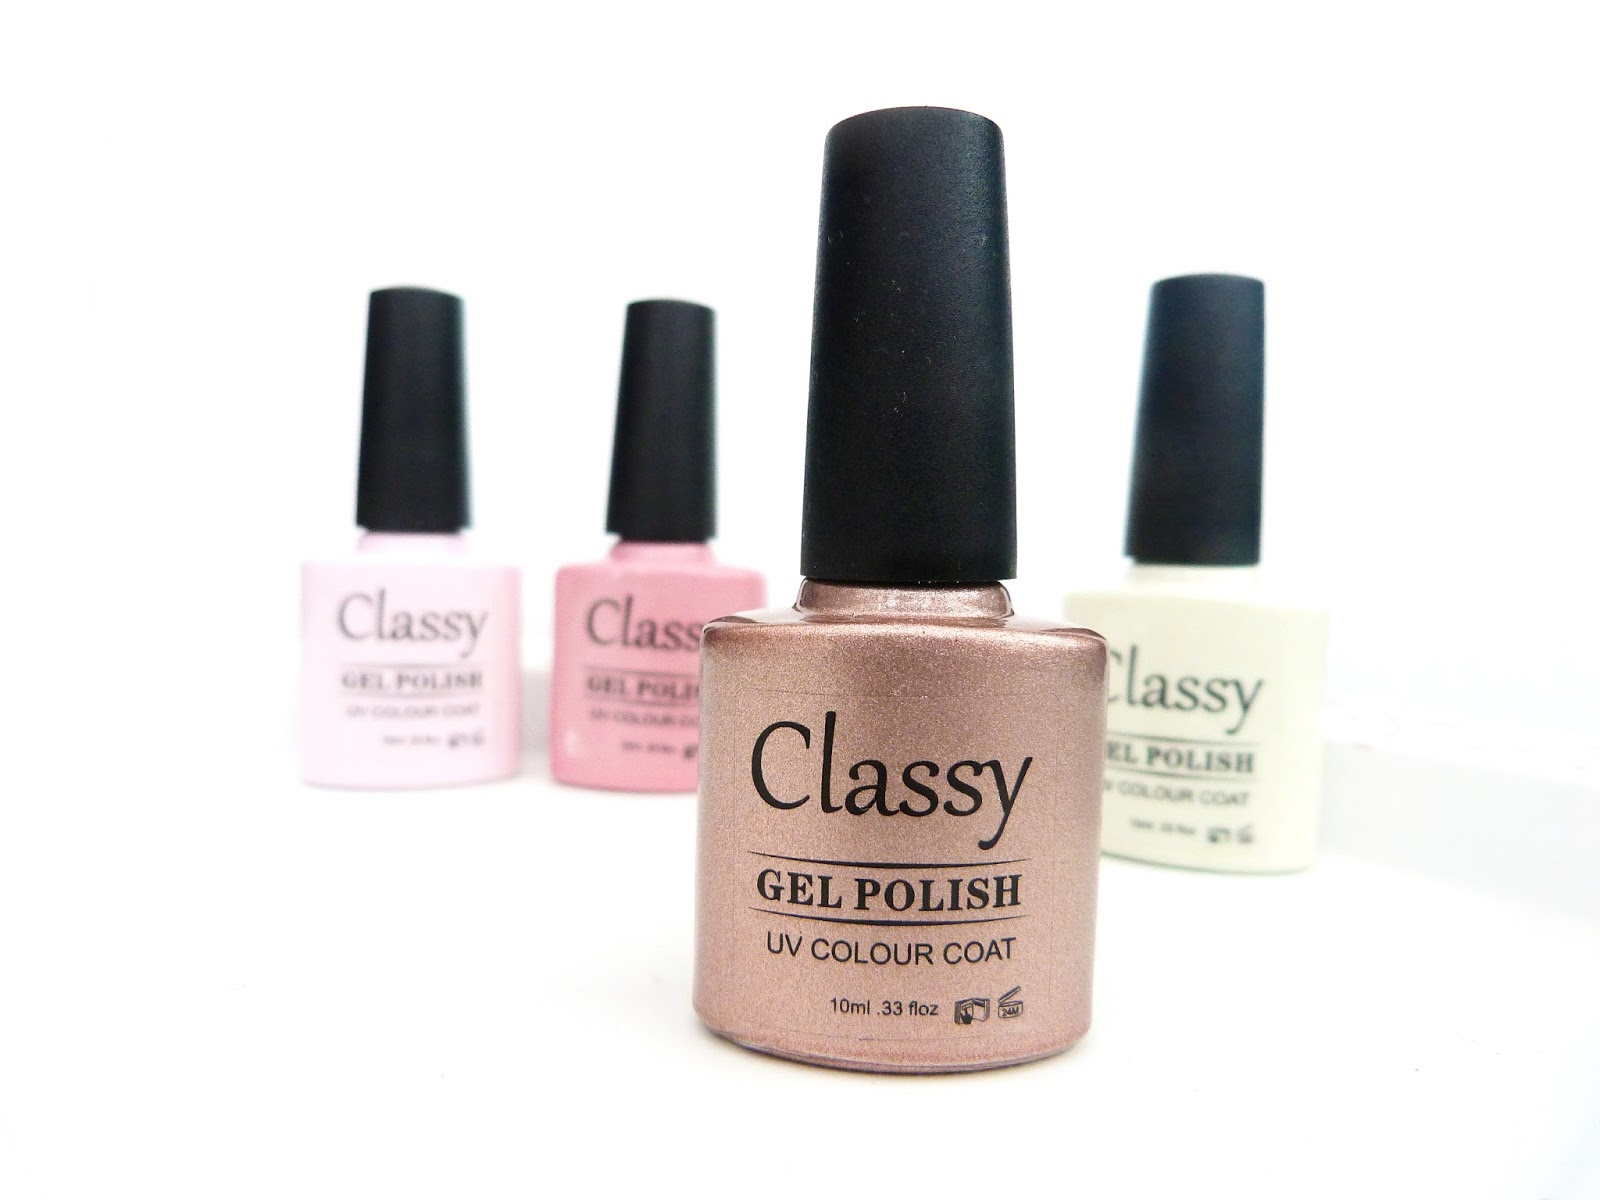 Dainty Alice Classy Nails Polishes